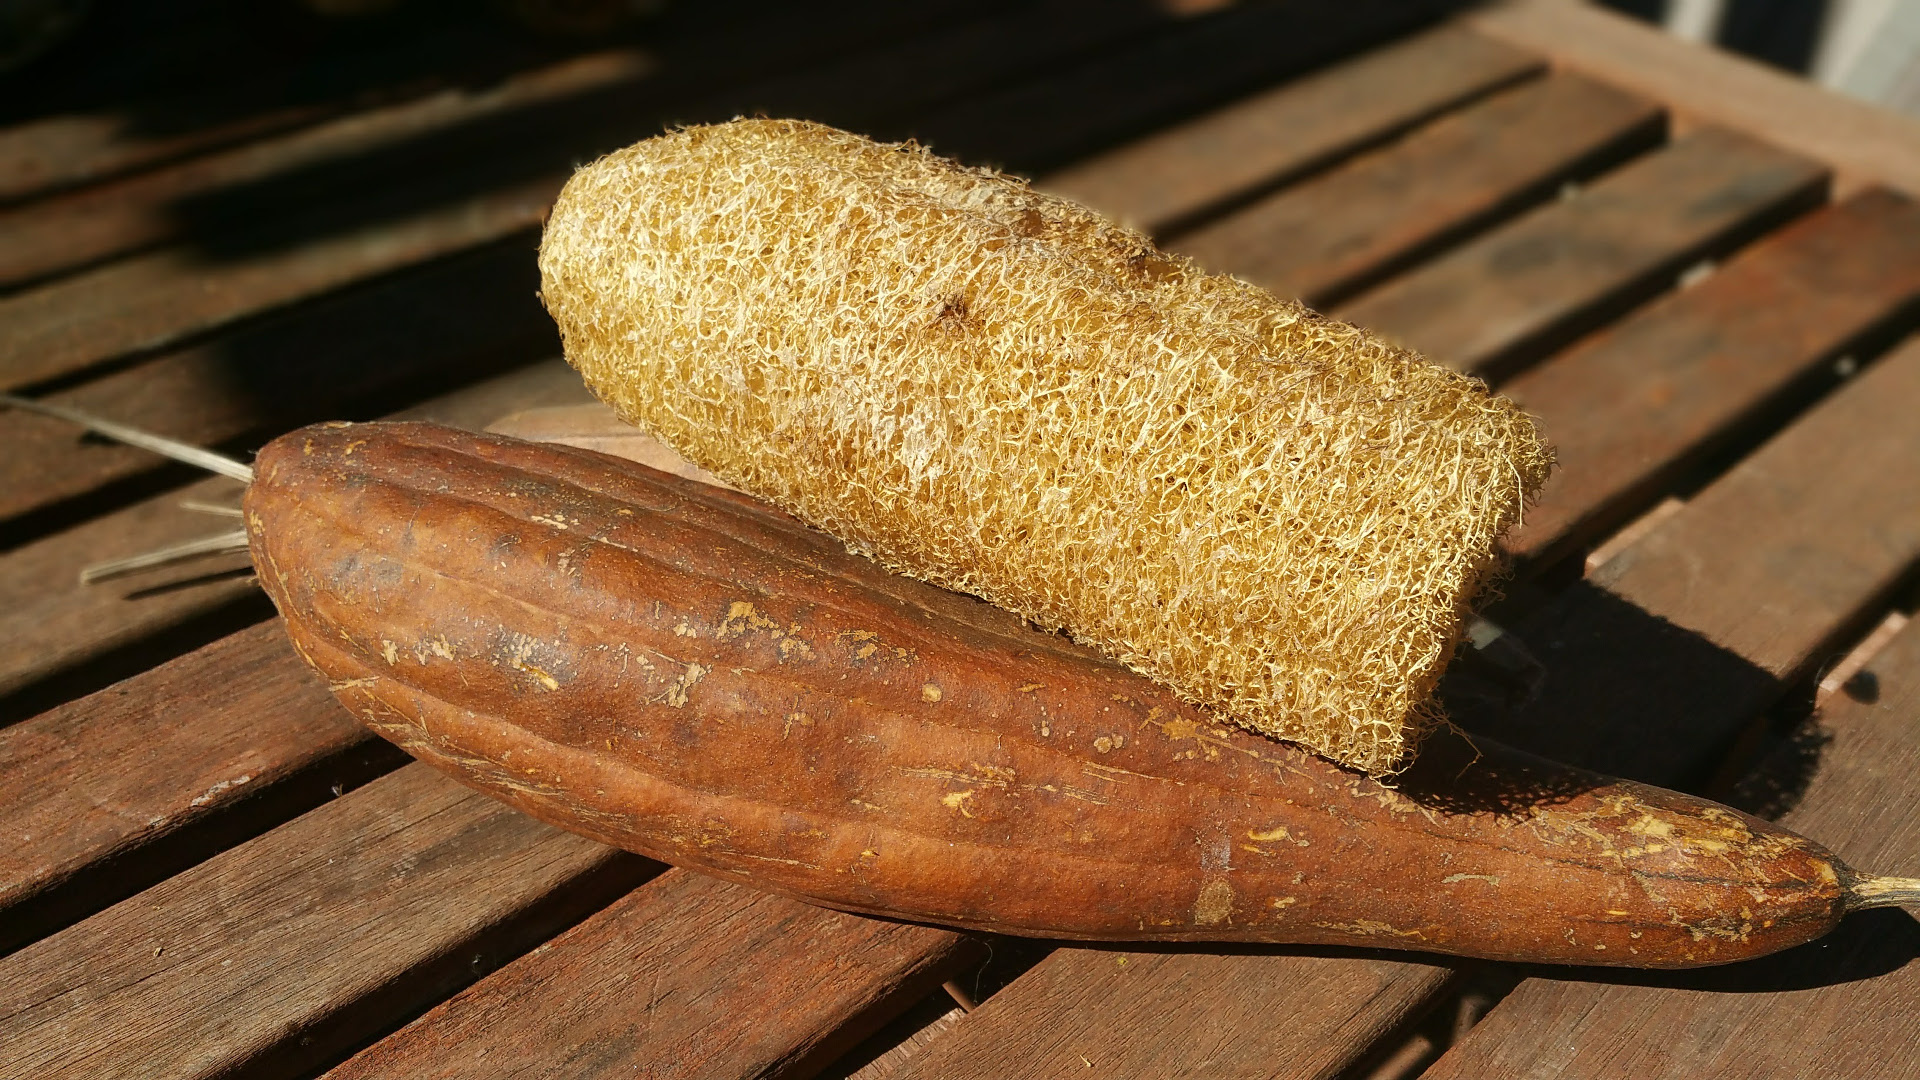 Grow your own all natural luffa sponges